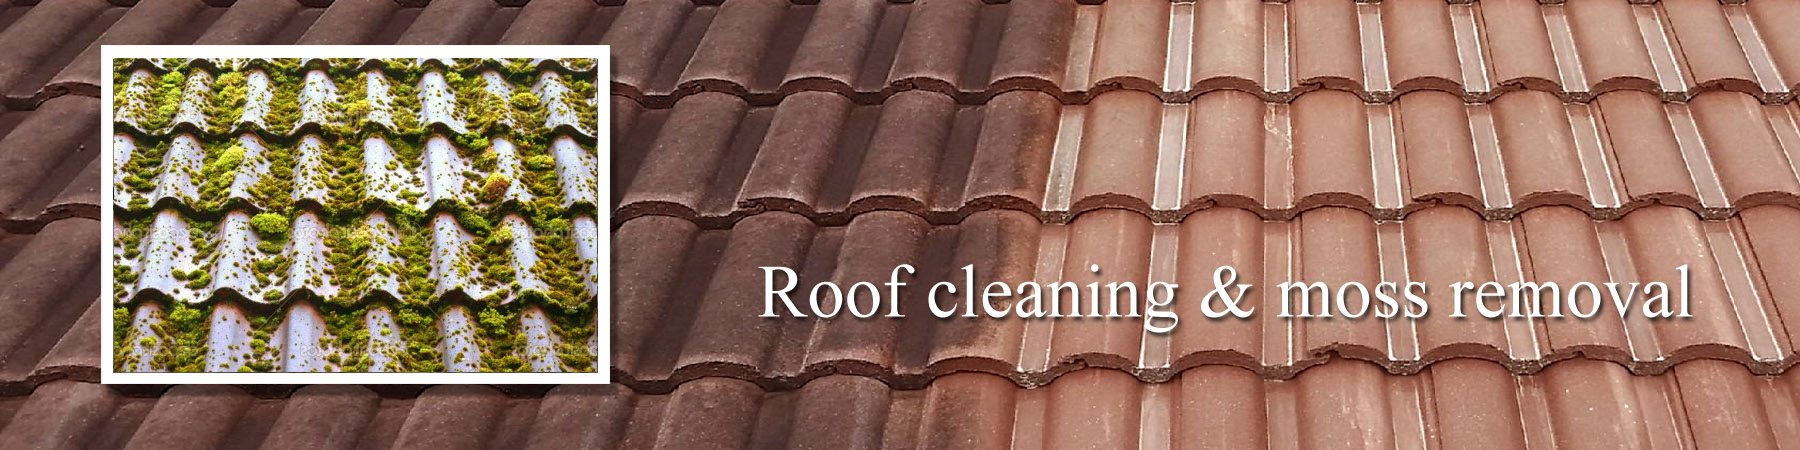 J.R. Roof Cleaning Forest Hill roof moss removal repairs & coating J R Cleaning